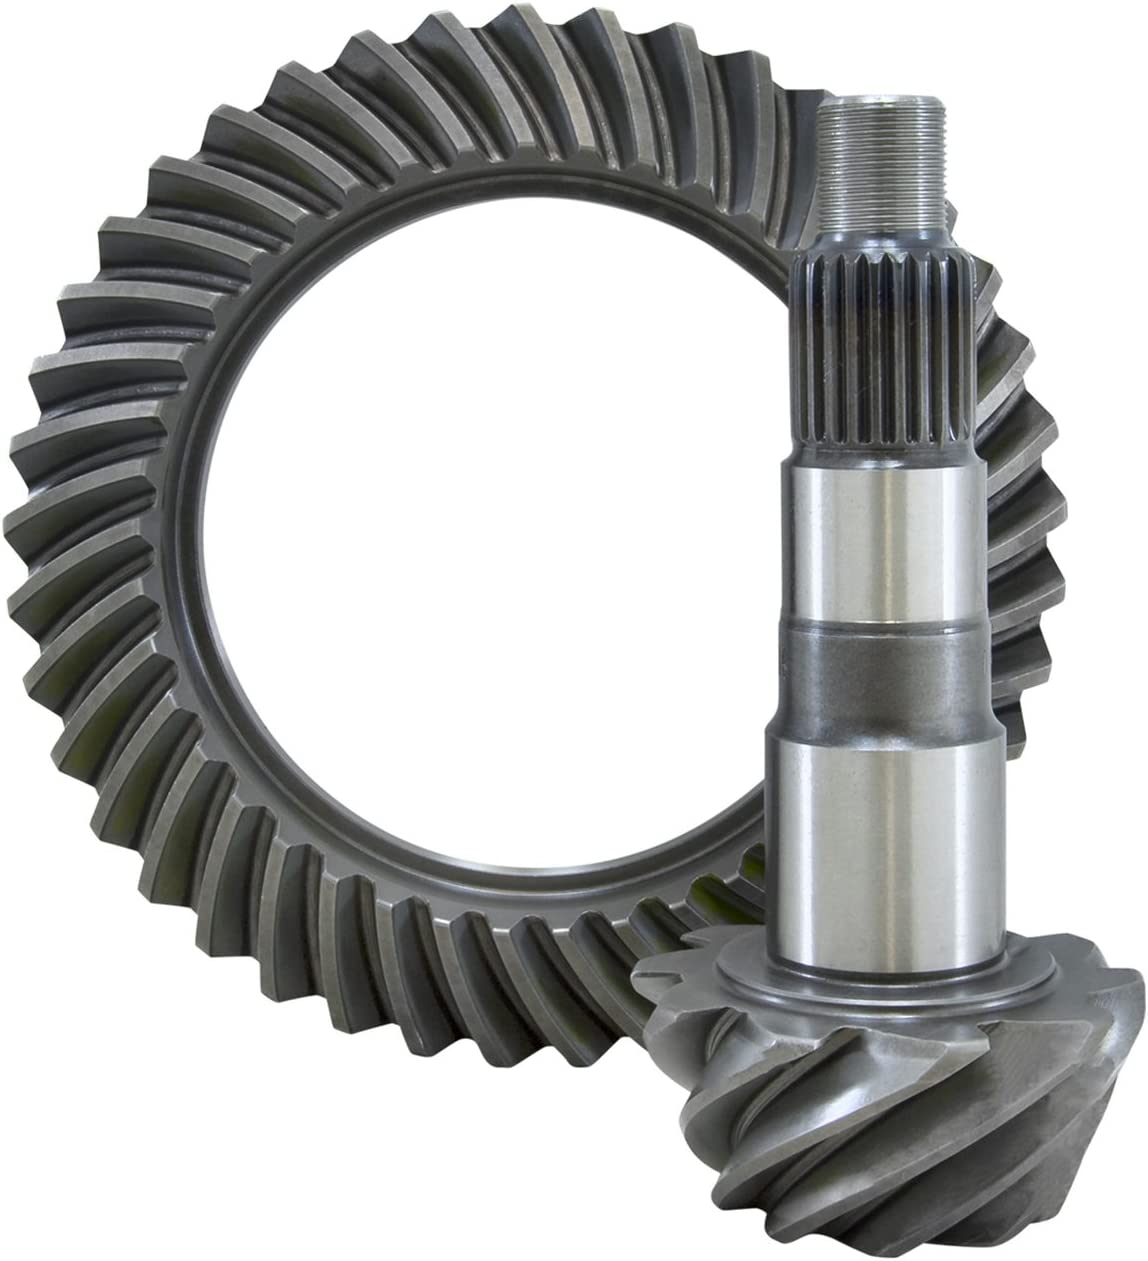 Yukon YG F10.25-513L High Performance Ring and Pinion Gear Set for Ford 10.25 Differential